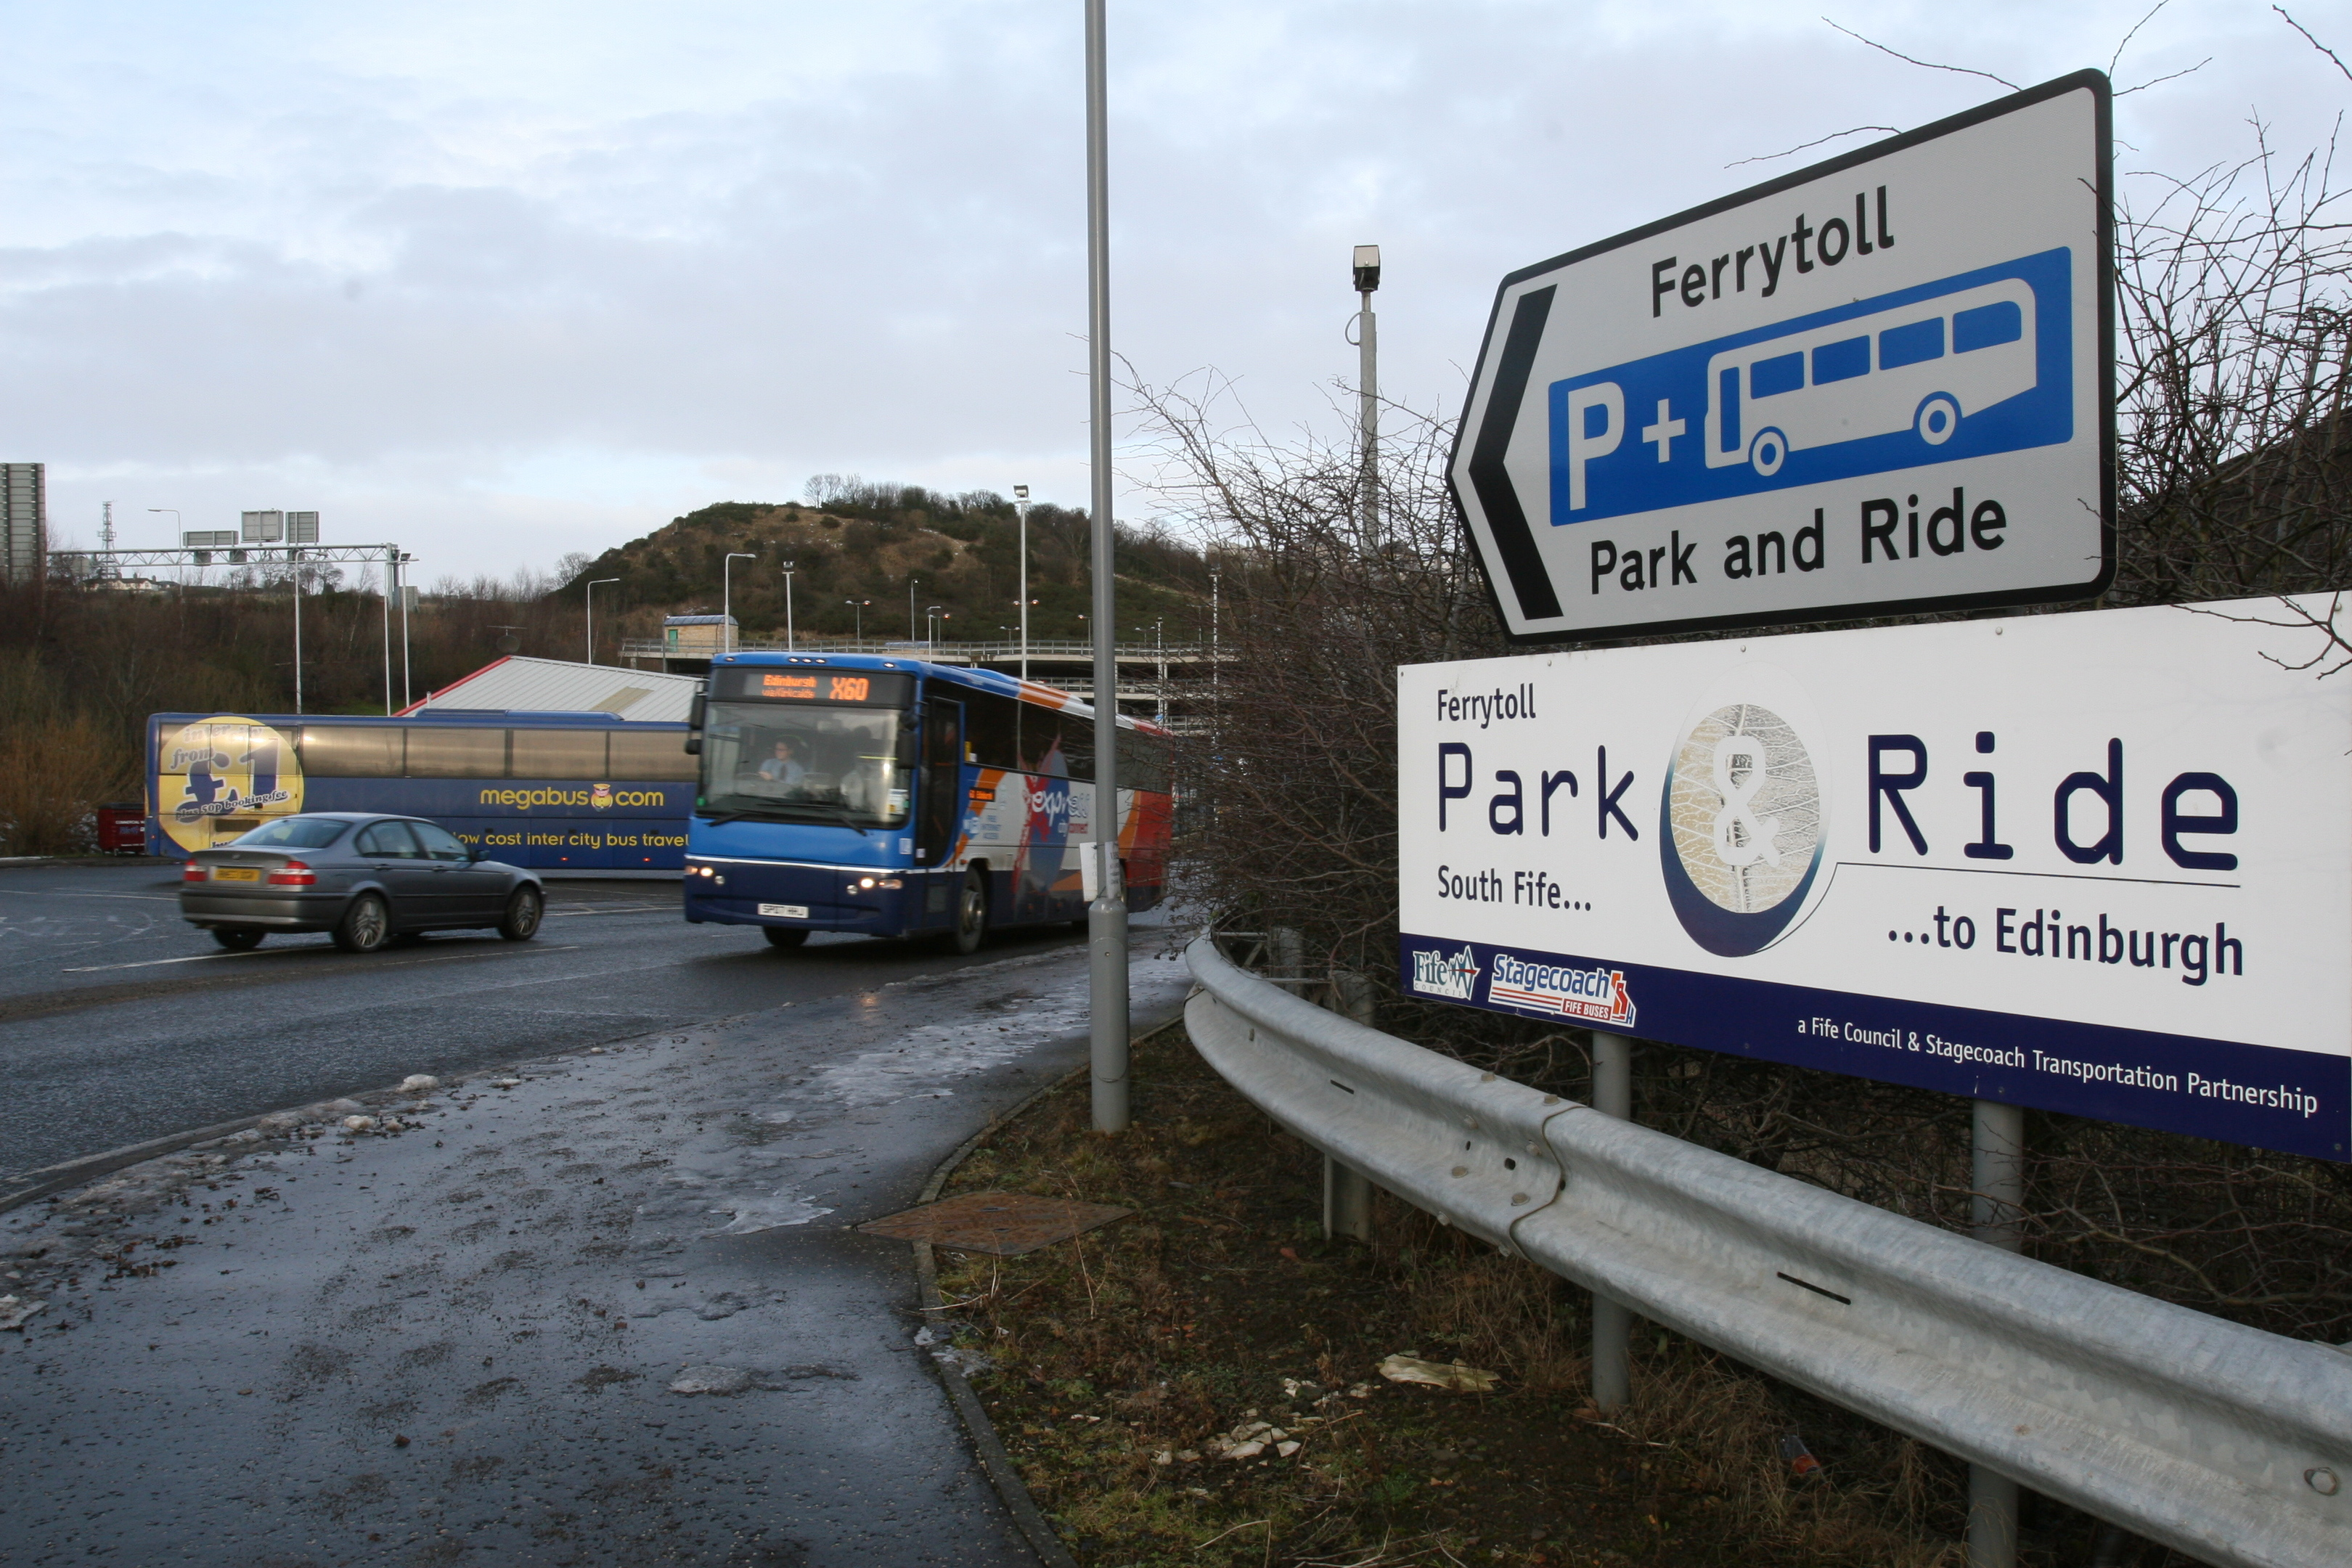 Ferrytoll Park and Ride by North Queensferry.